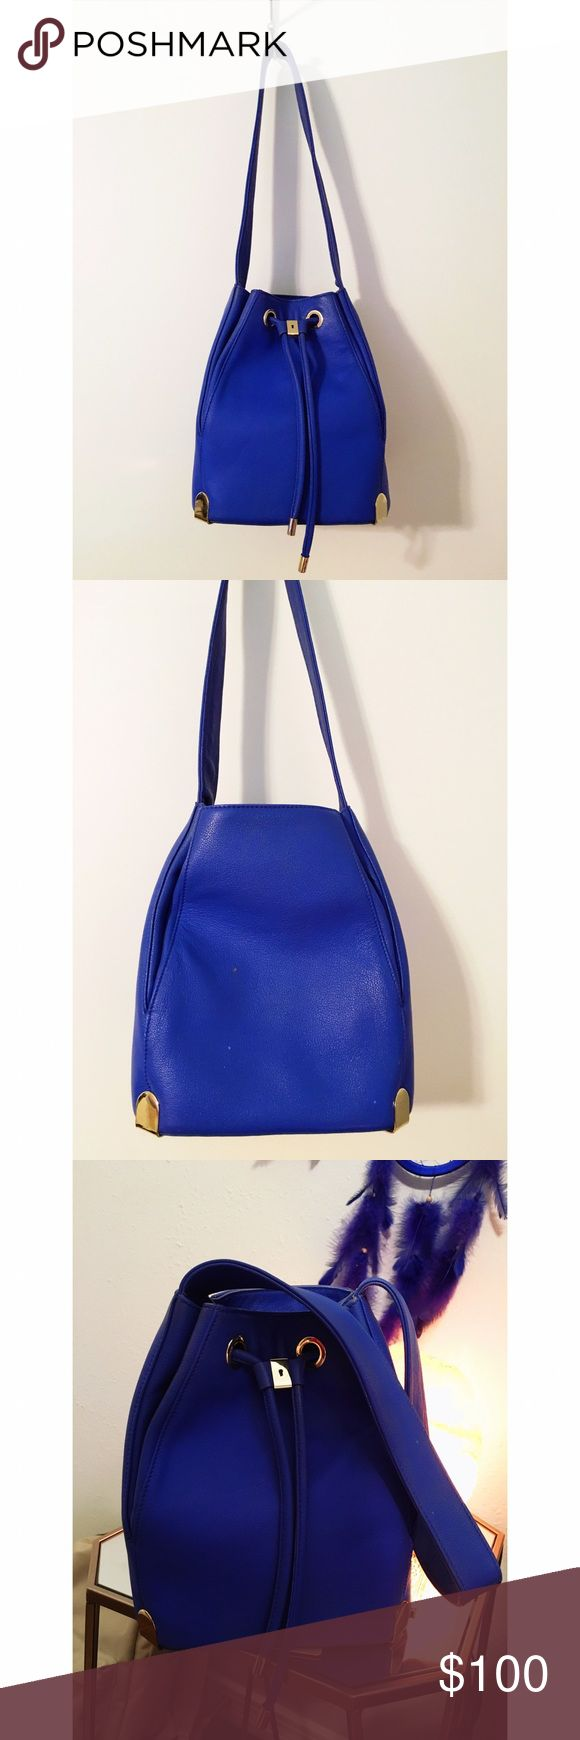 Vince Camuto leather drawstring handbag Lightly worn, great condition, genuine leather Vince Camuto drawstring handbag with gold hardware.     Style: Janet Drawstring Bag                                                   Color: Lapis Blue Vince Camuto Bags Shoulder Bags